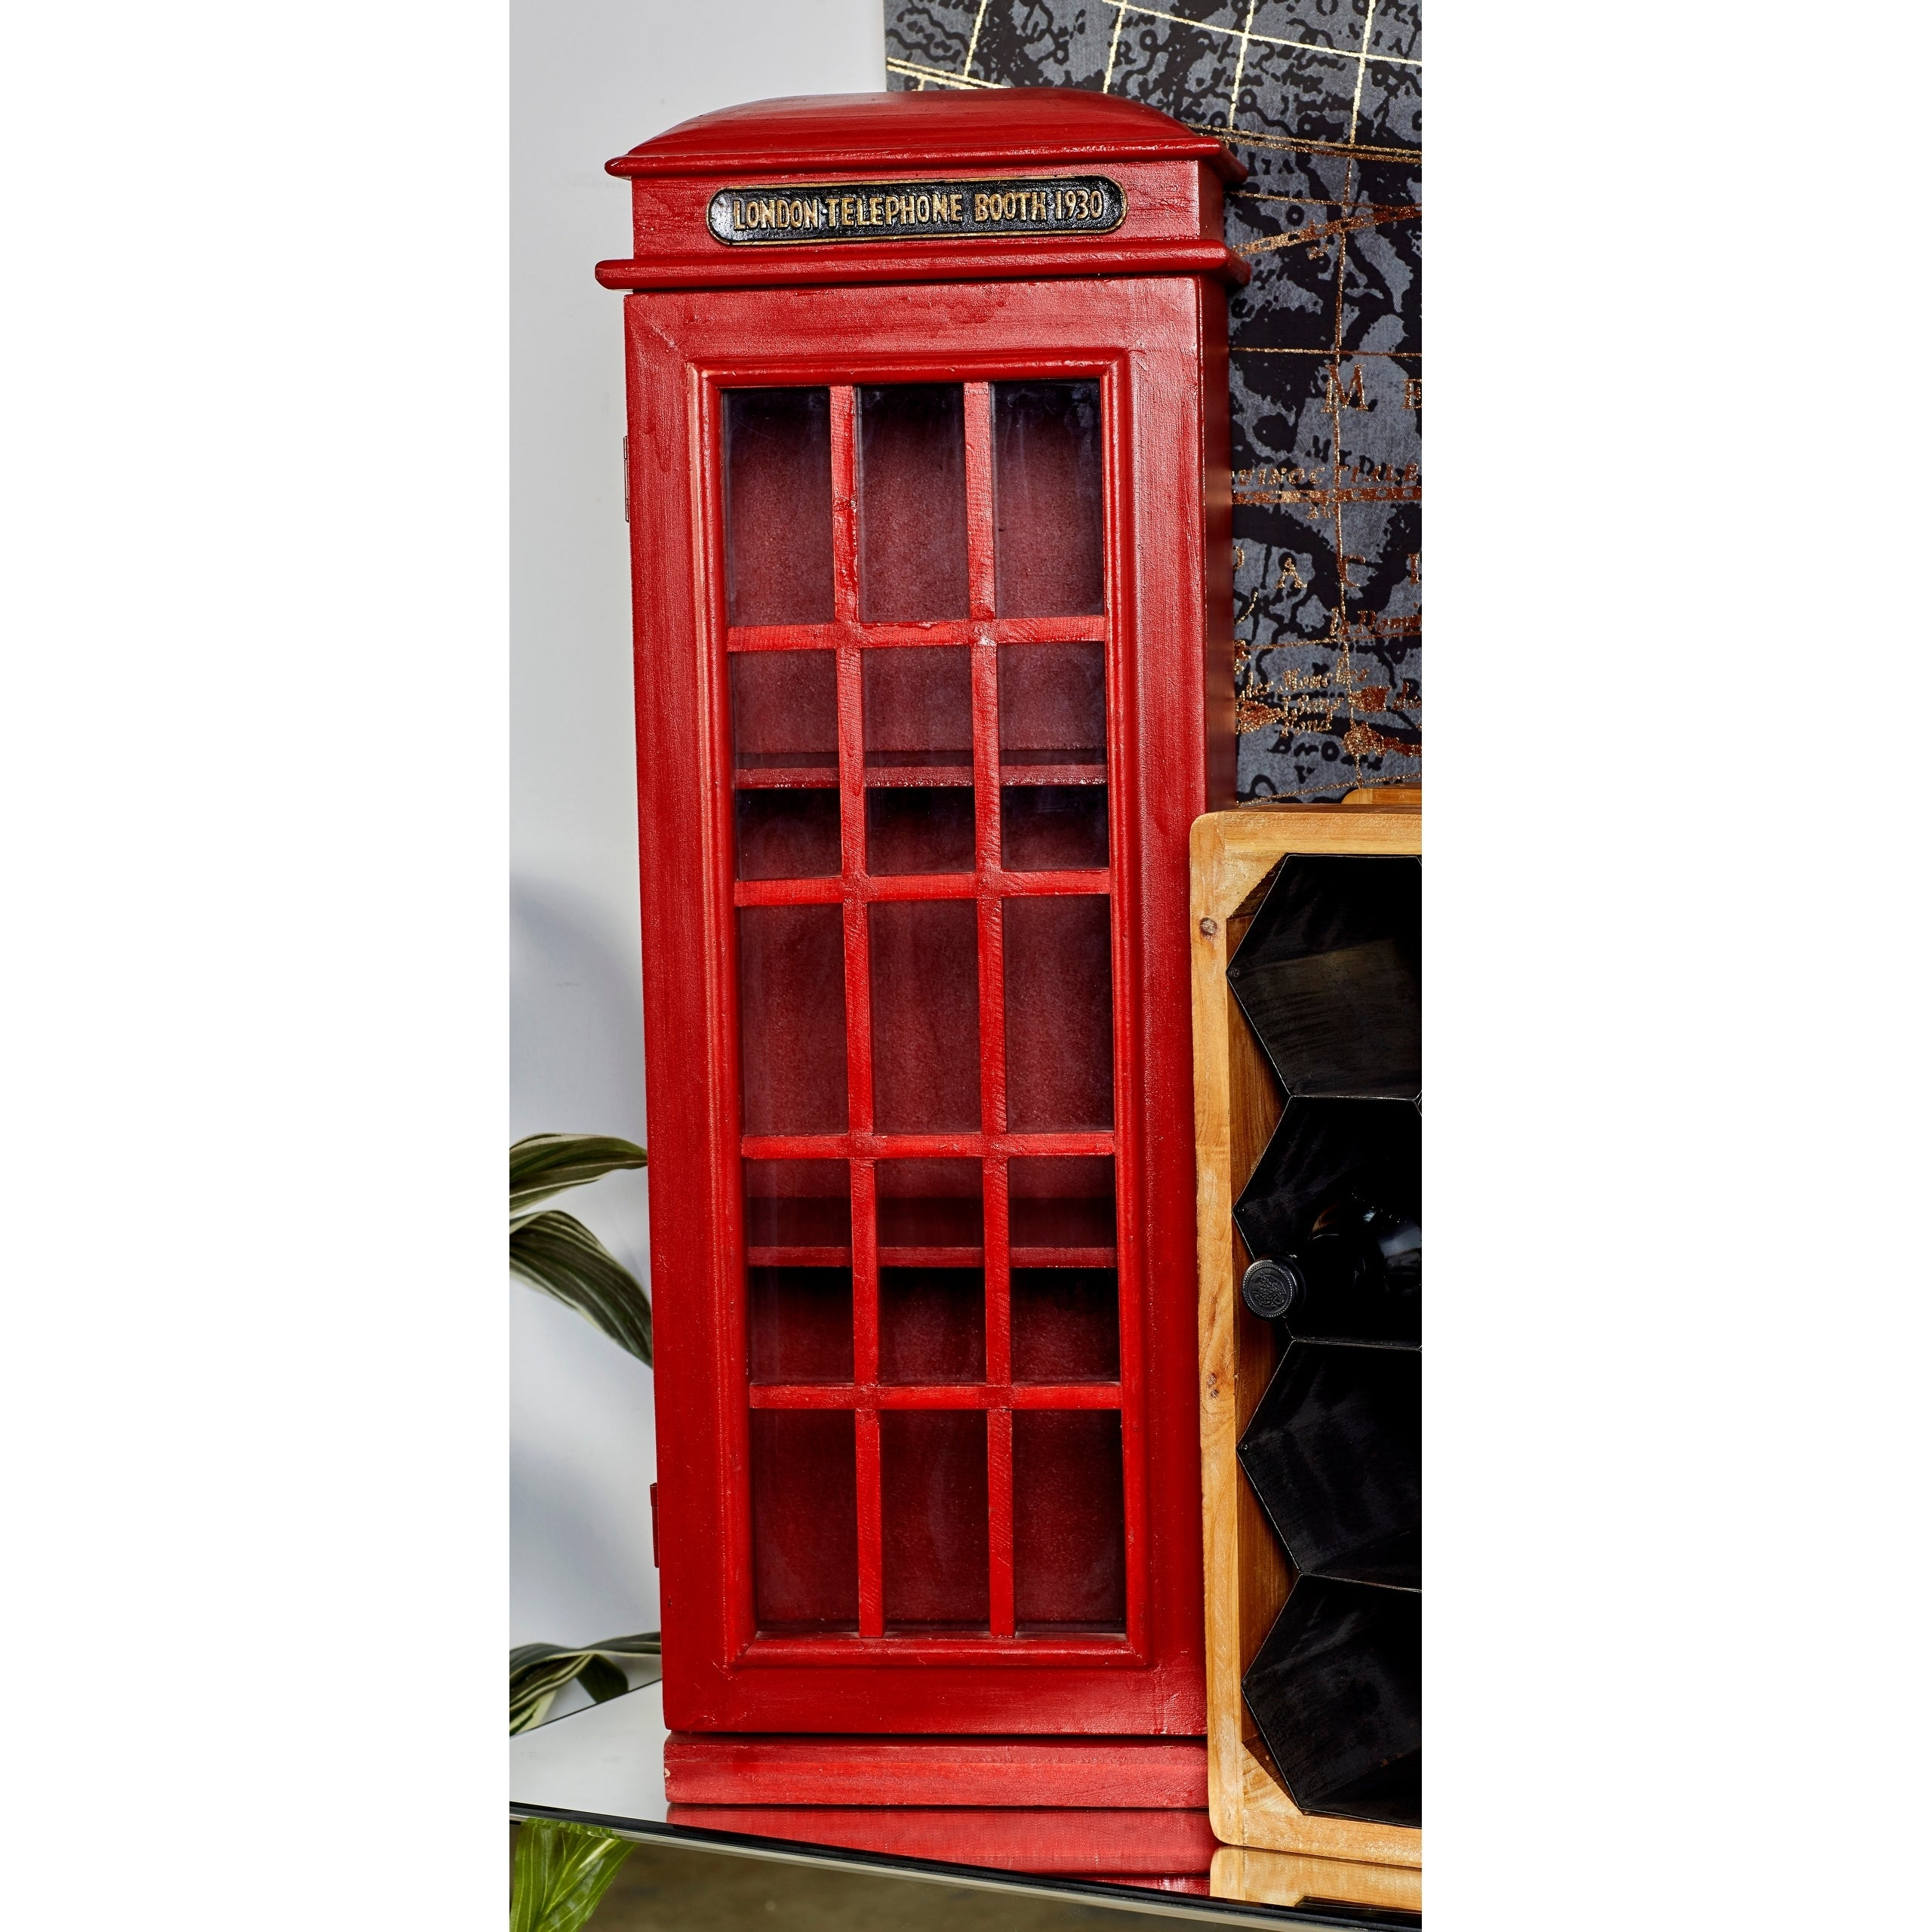 Benzara 95827 London Telephone Red Booth Cd- Dvd Holder Cabinet 30 In.H